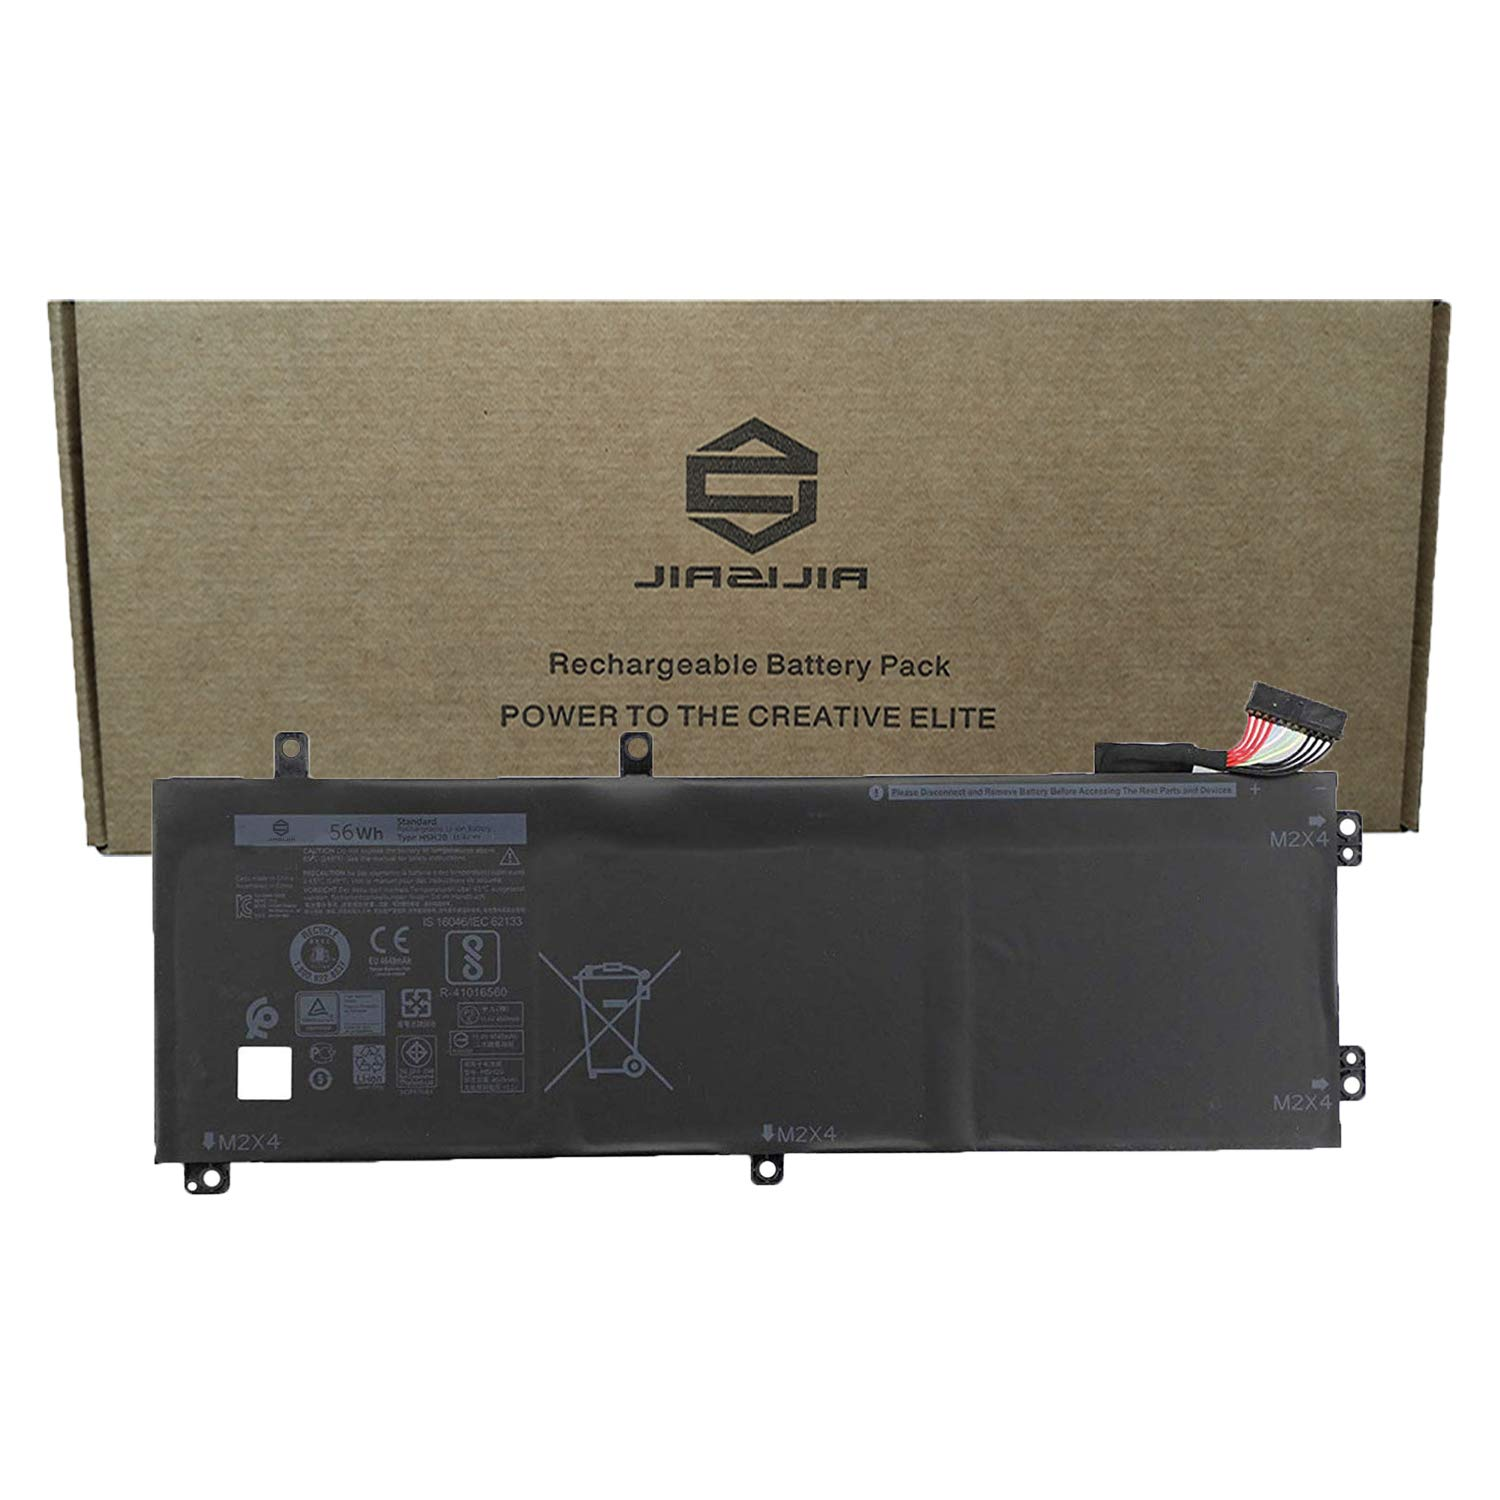 JIAZIJIA Compatible Laptop Battery with Dell H5H20 [11.4V 56Wh 4946mAh 3-Cell] XPS 15 9560 9570 Precision 5520 M5520 Series Notebook 6GPTY 62MJV M7R96 Black - 1 Year Warranty by JIAZIJIA (Image #1)